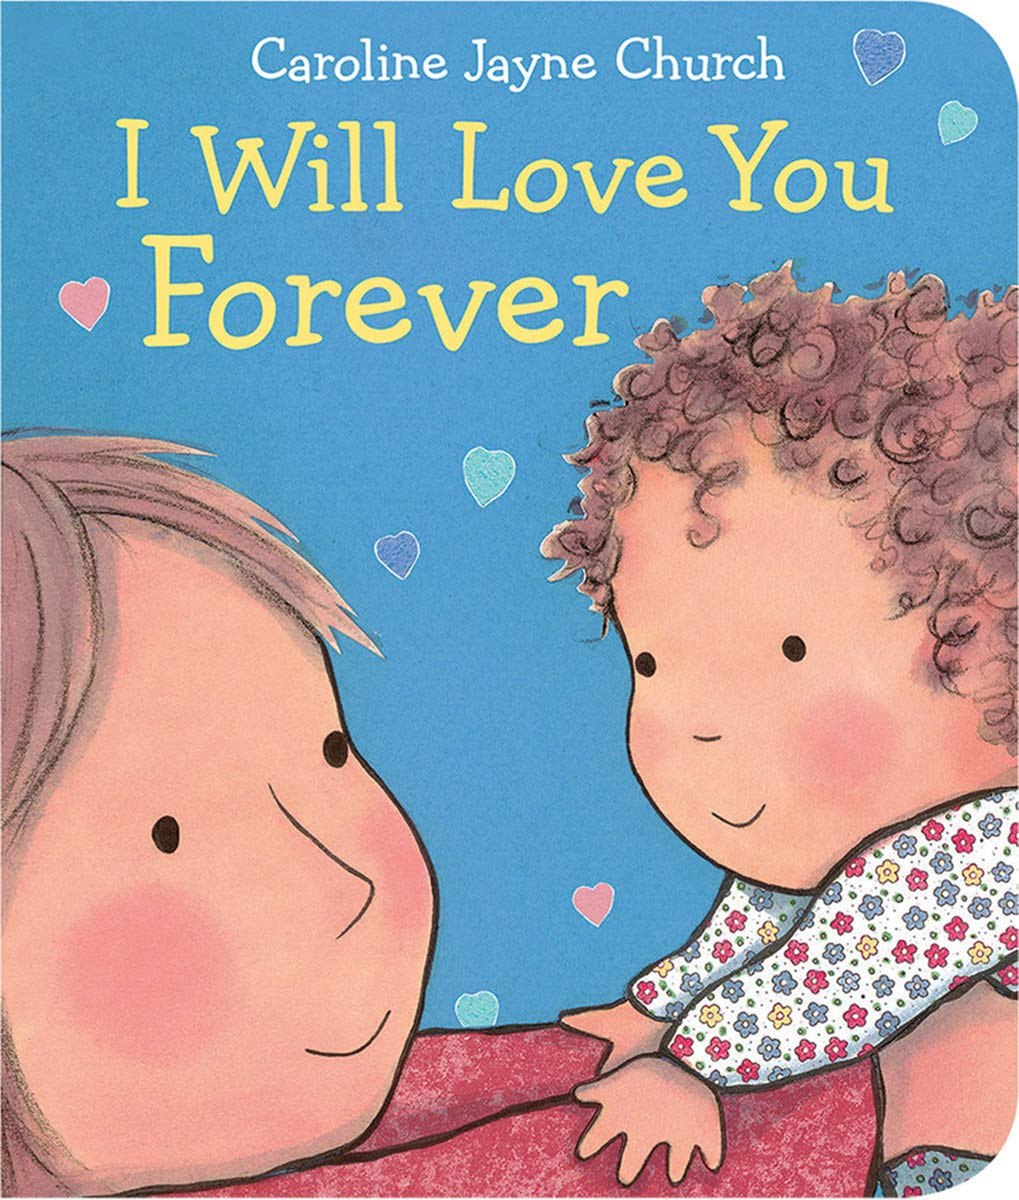 I Will Love You Forever - All-Star Learning Inc. - Proudly Canadian